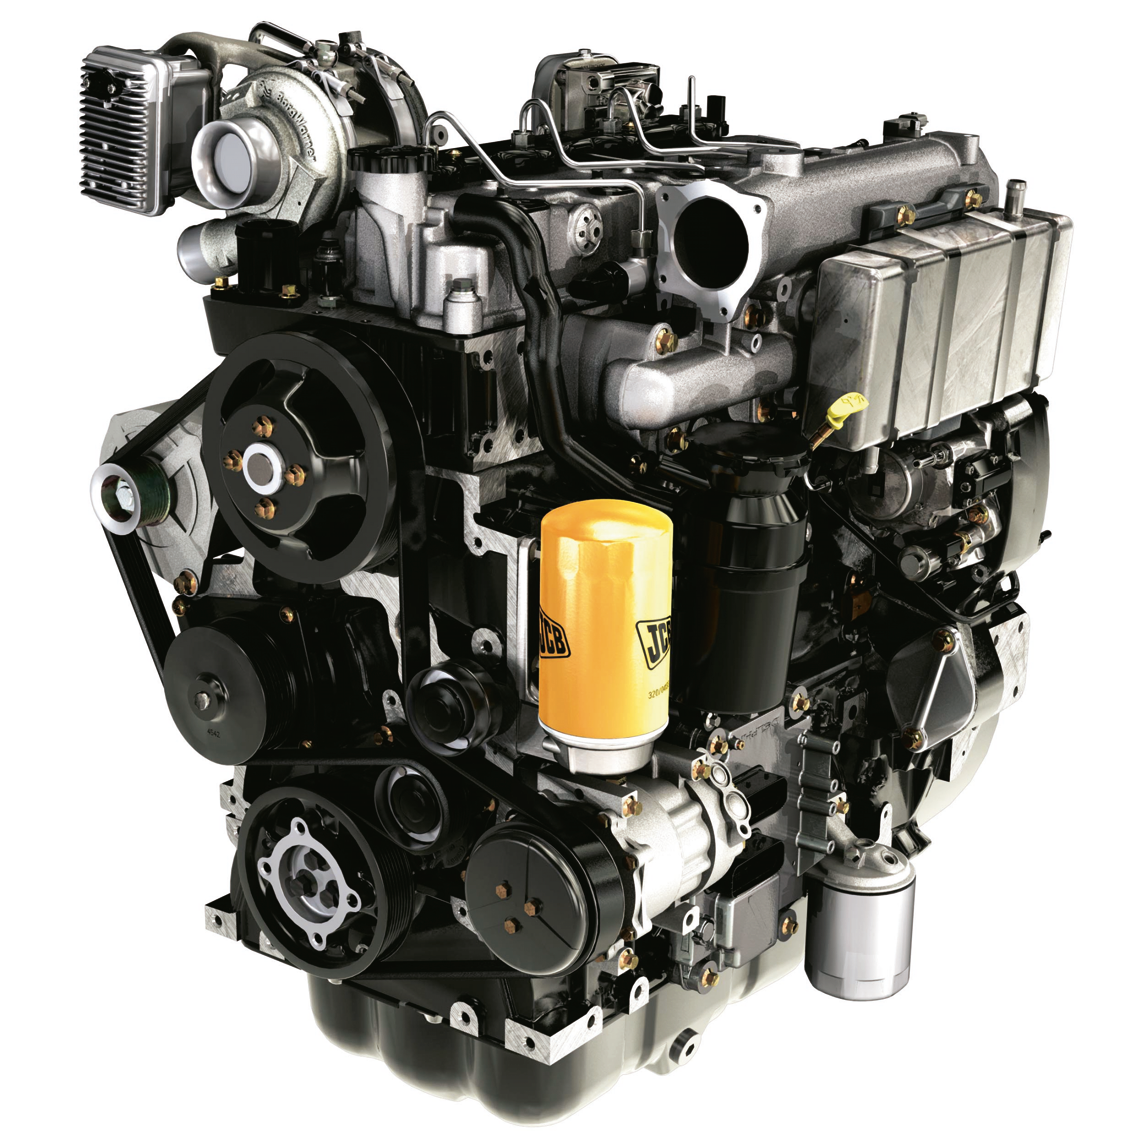 Find All Jcb Related Specifications Technical Data And